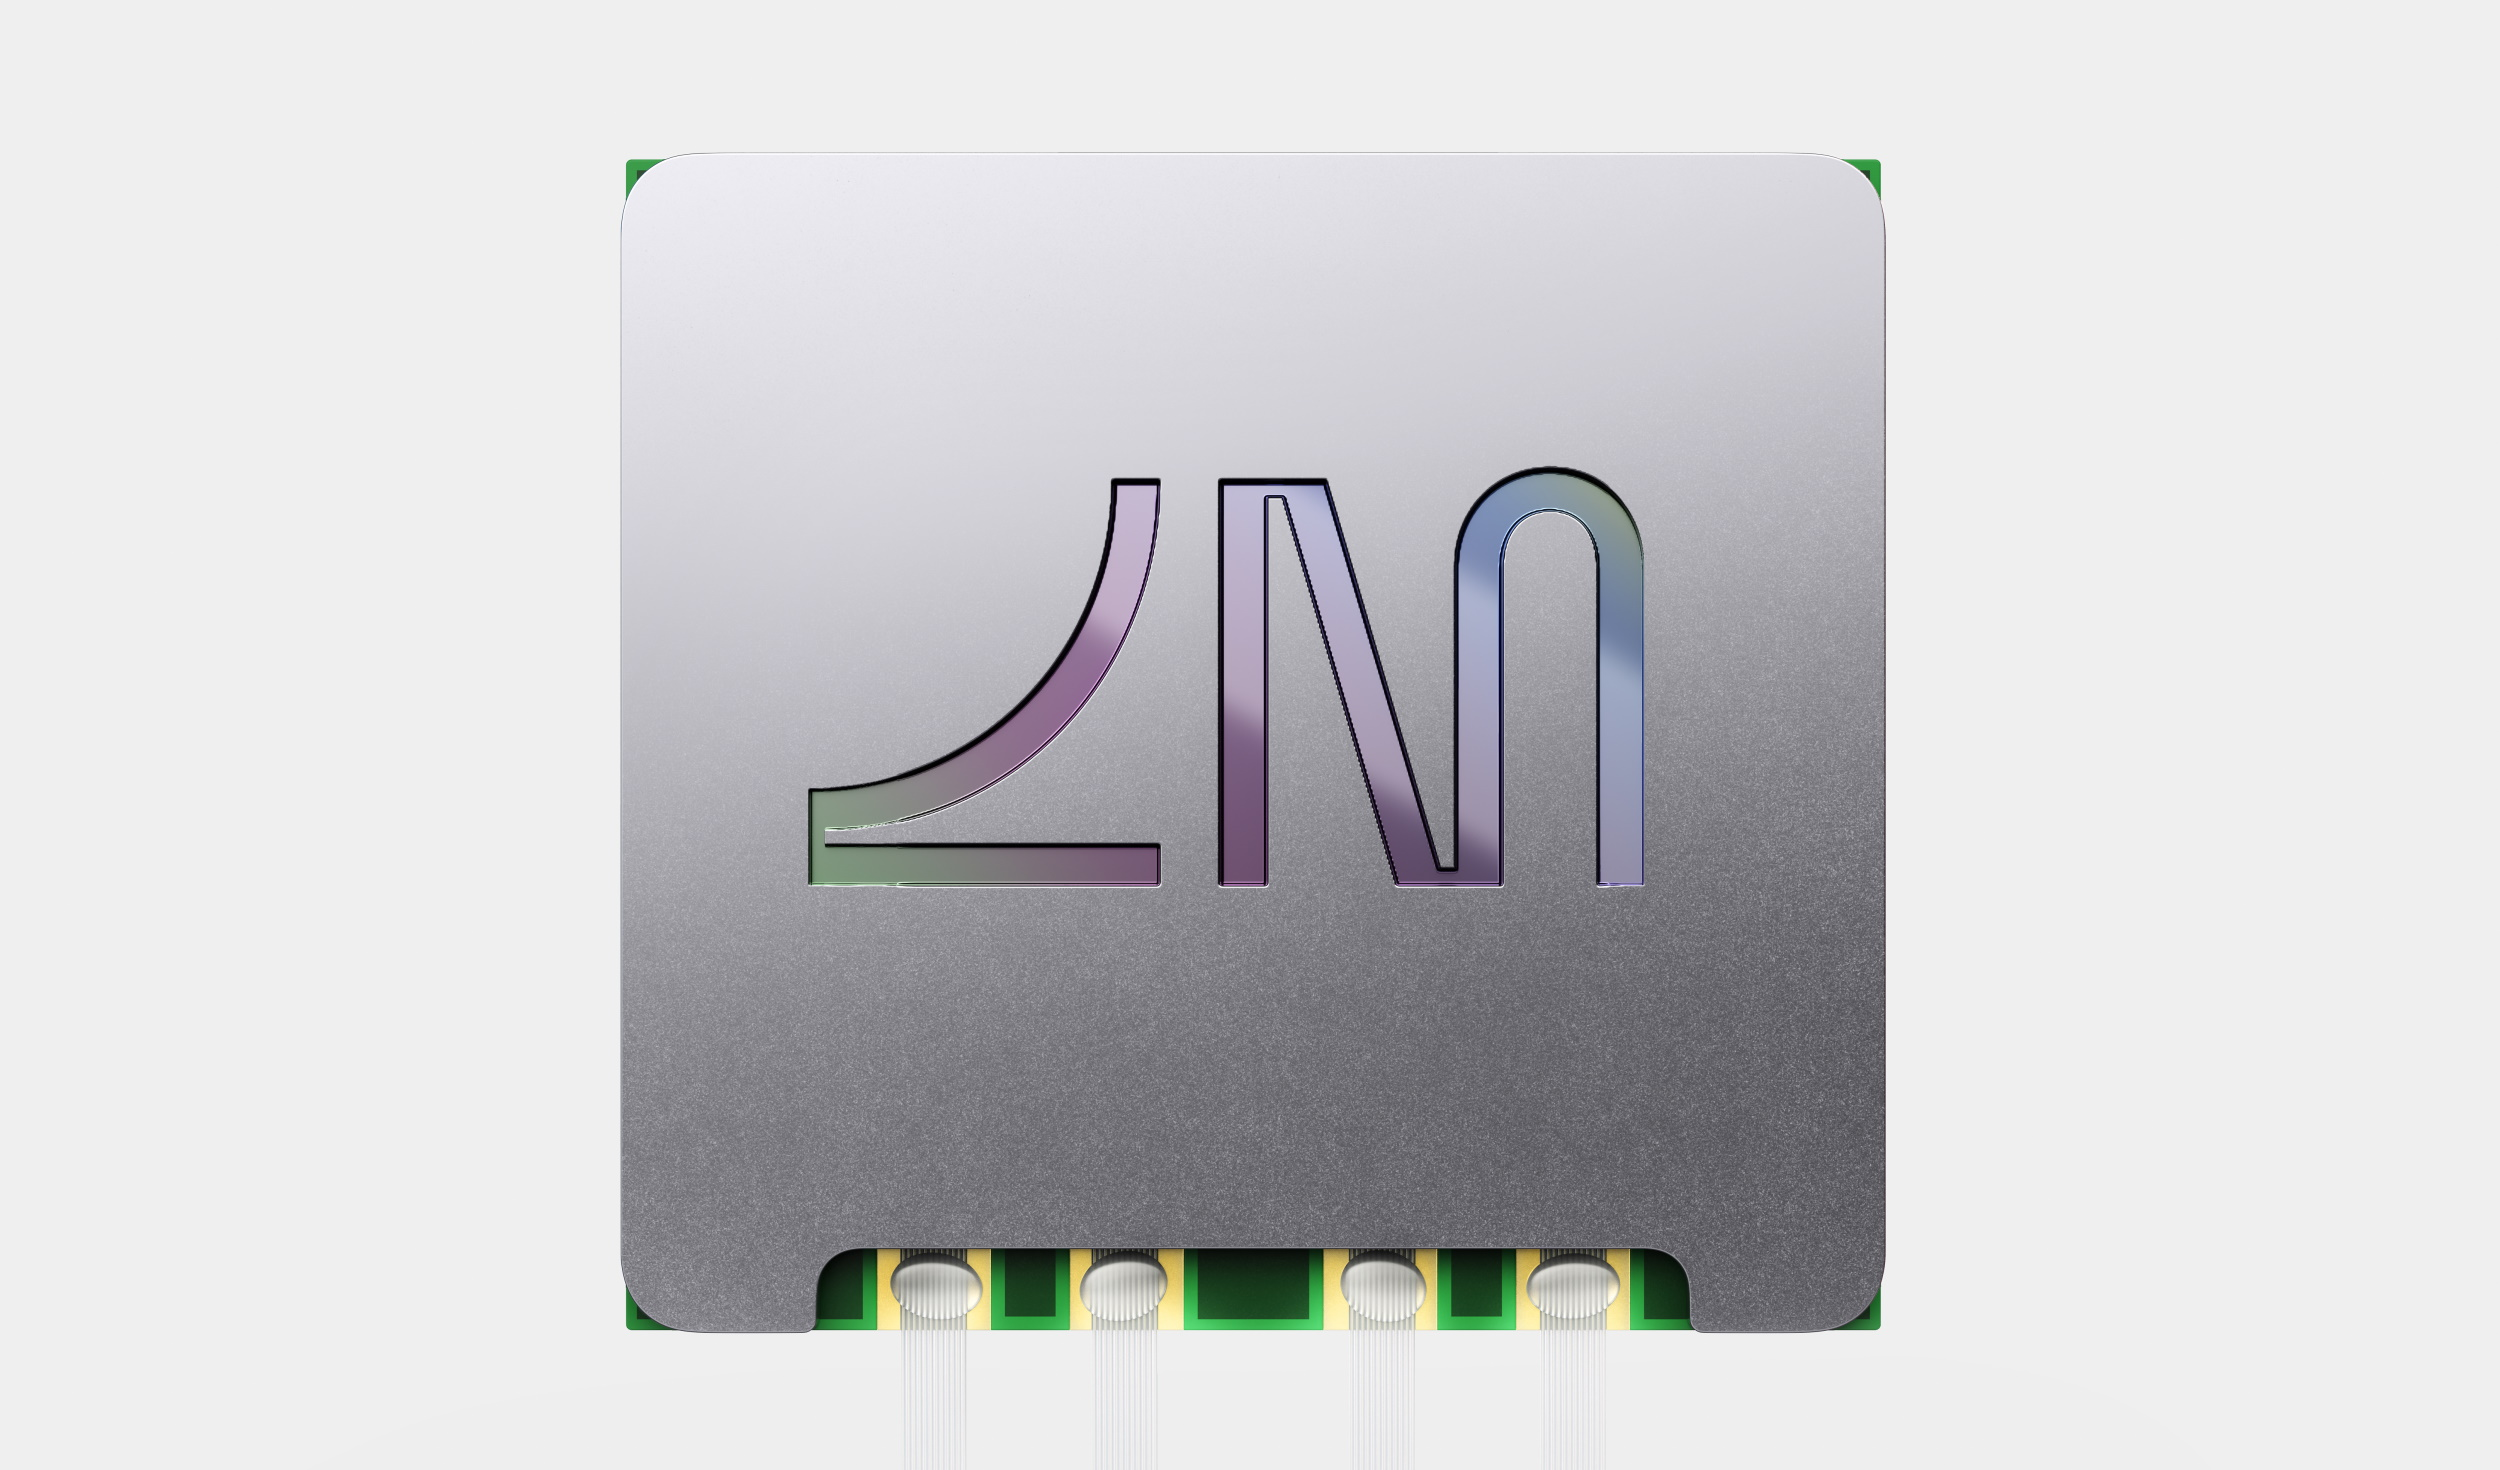 A Lightmatter chip with its logo on the side.